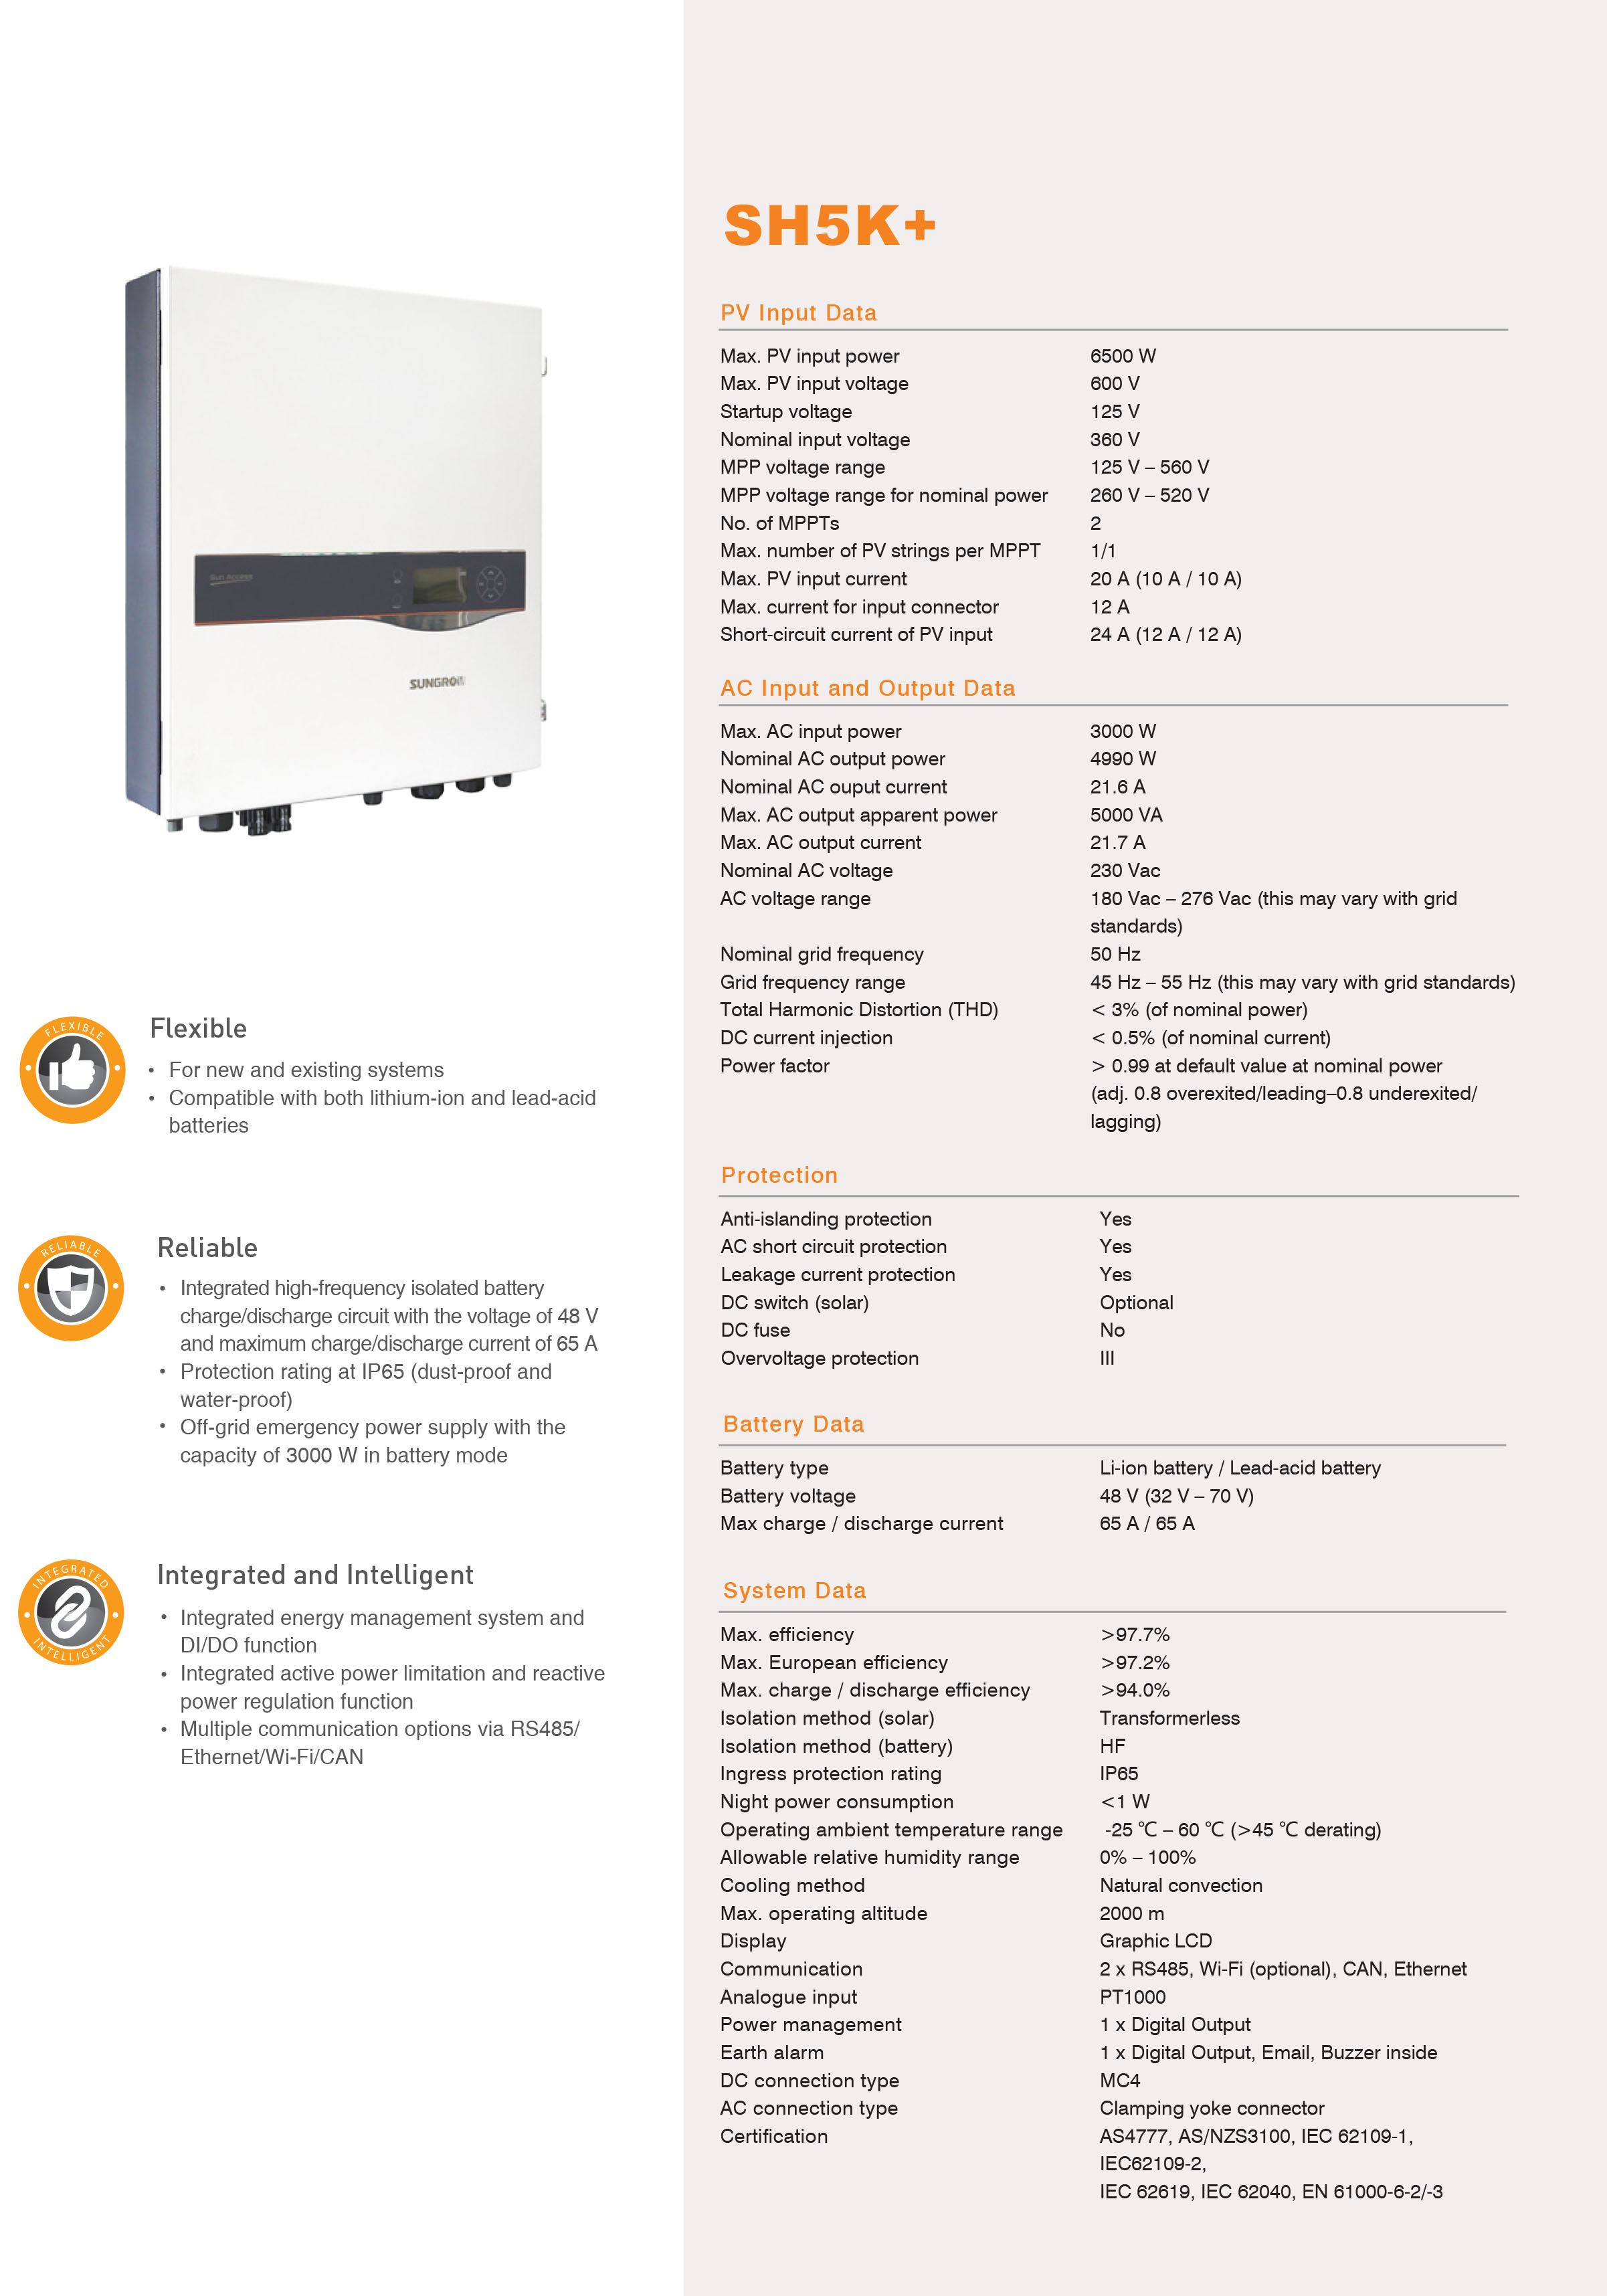 sungrow 5kw hybrid inverter manual